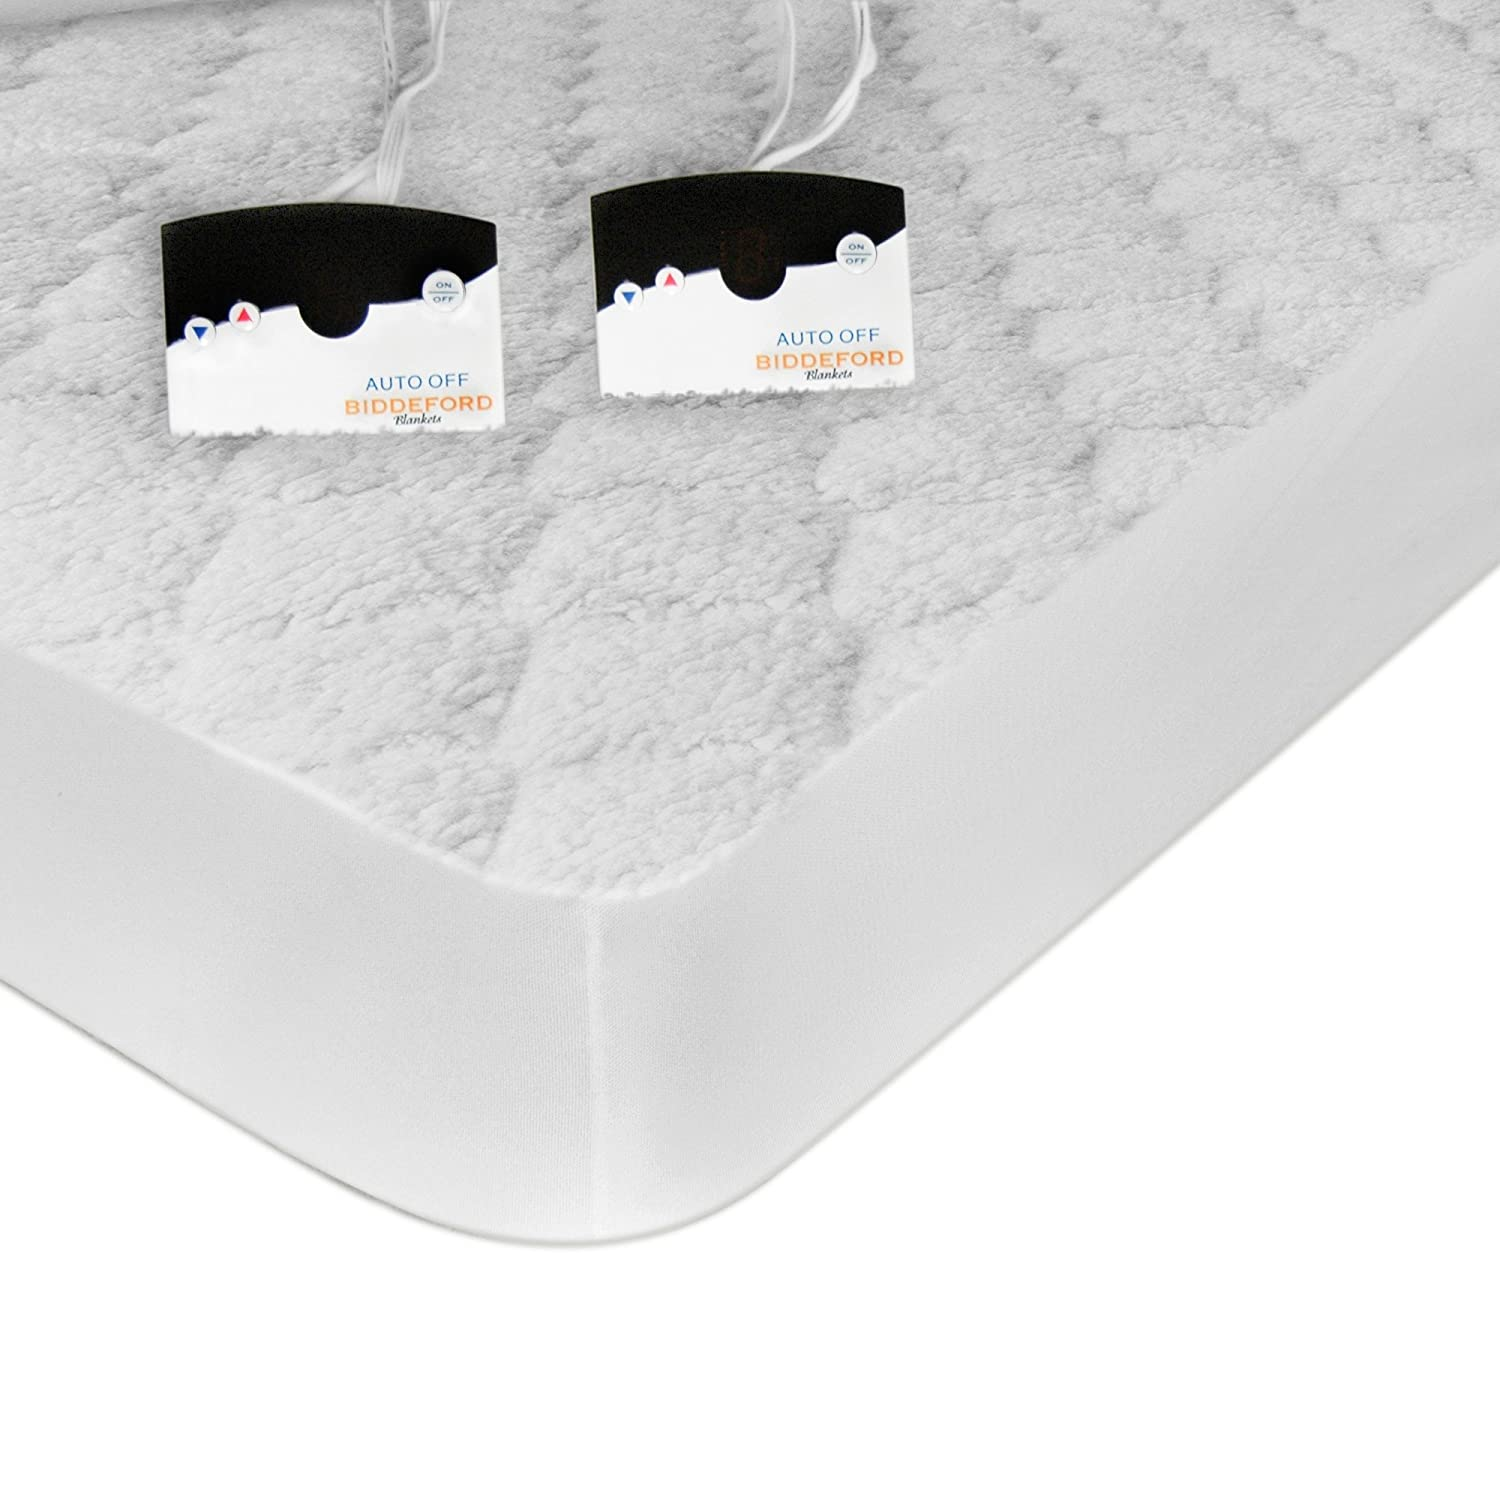 support is made polyester washable safety quilted preheating of mattress function meets and bedding biddeford machine lot electric life standards sunbeam for heated great pad a tag it the has blanket ul